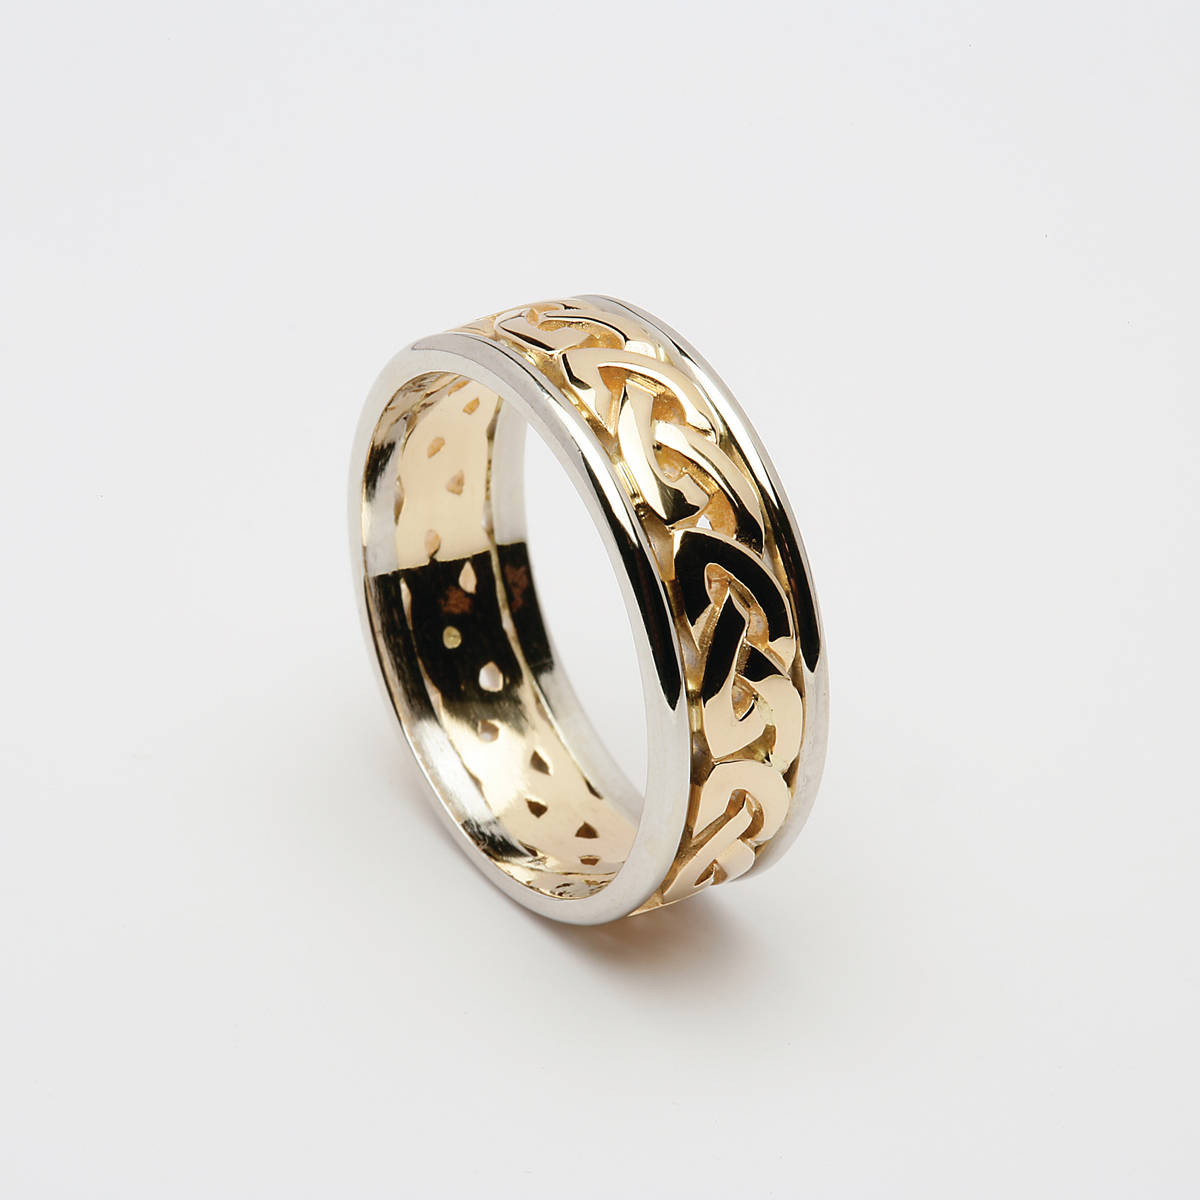 14 carat man's Celtic eternity ring in yellow gold with white gold rims